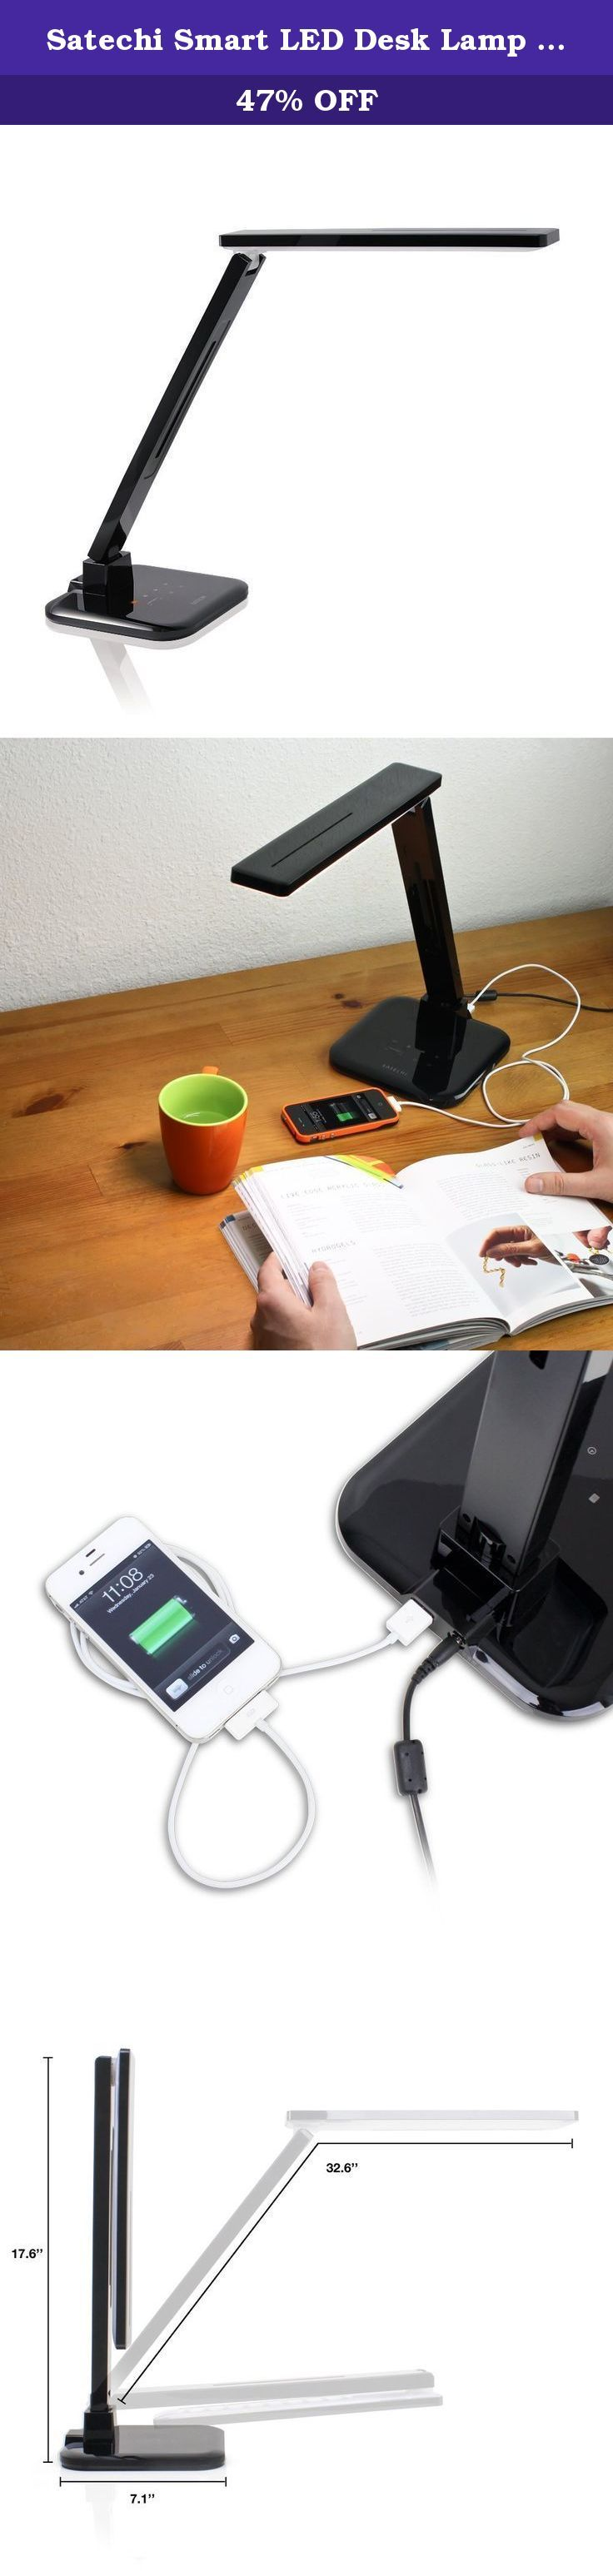 Satechi Smart LED Desk Lamp with Touch Control Dimmable Lighting, 1 Hour Off Timer & Smart Phone Charging Port (Black). The Satechi LED Desk Lamp is a perfect, bright companion for your desk, end table, or office. Featuring easy-to-use touch screen controls and a variety of light-intensity modes and brightness levels, the LED desk lamp can fulfill any lighting need. Highly energy-efficient, the minimal-design LED Desk Lamp consumes only 1/8th of the power of an incandescent lamp and less...